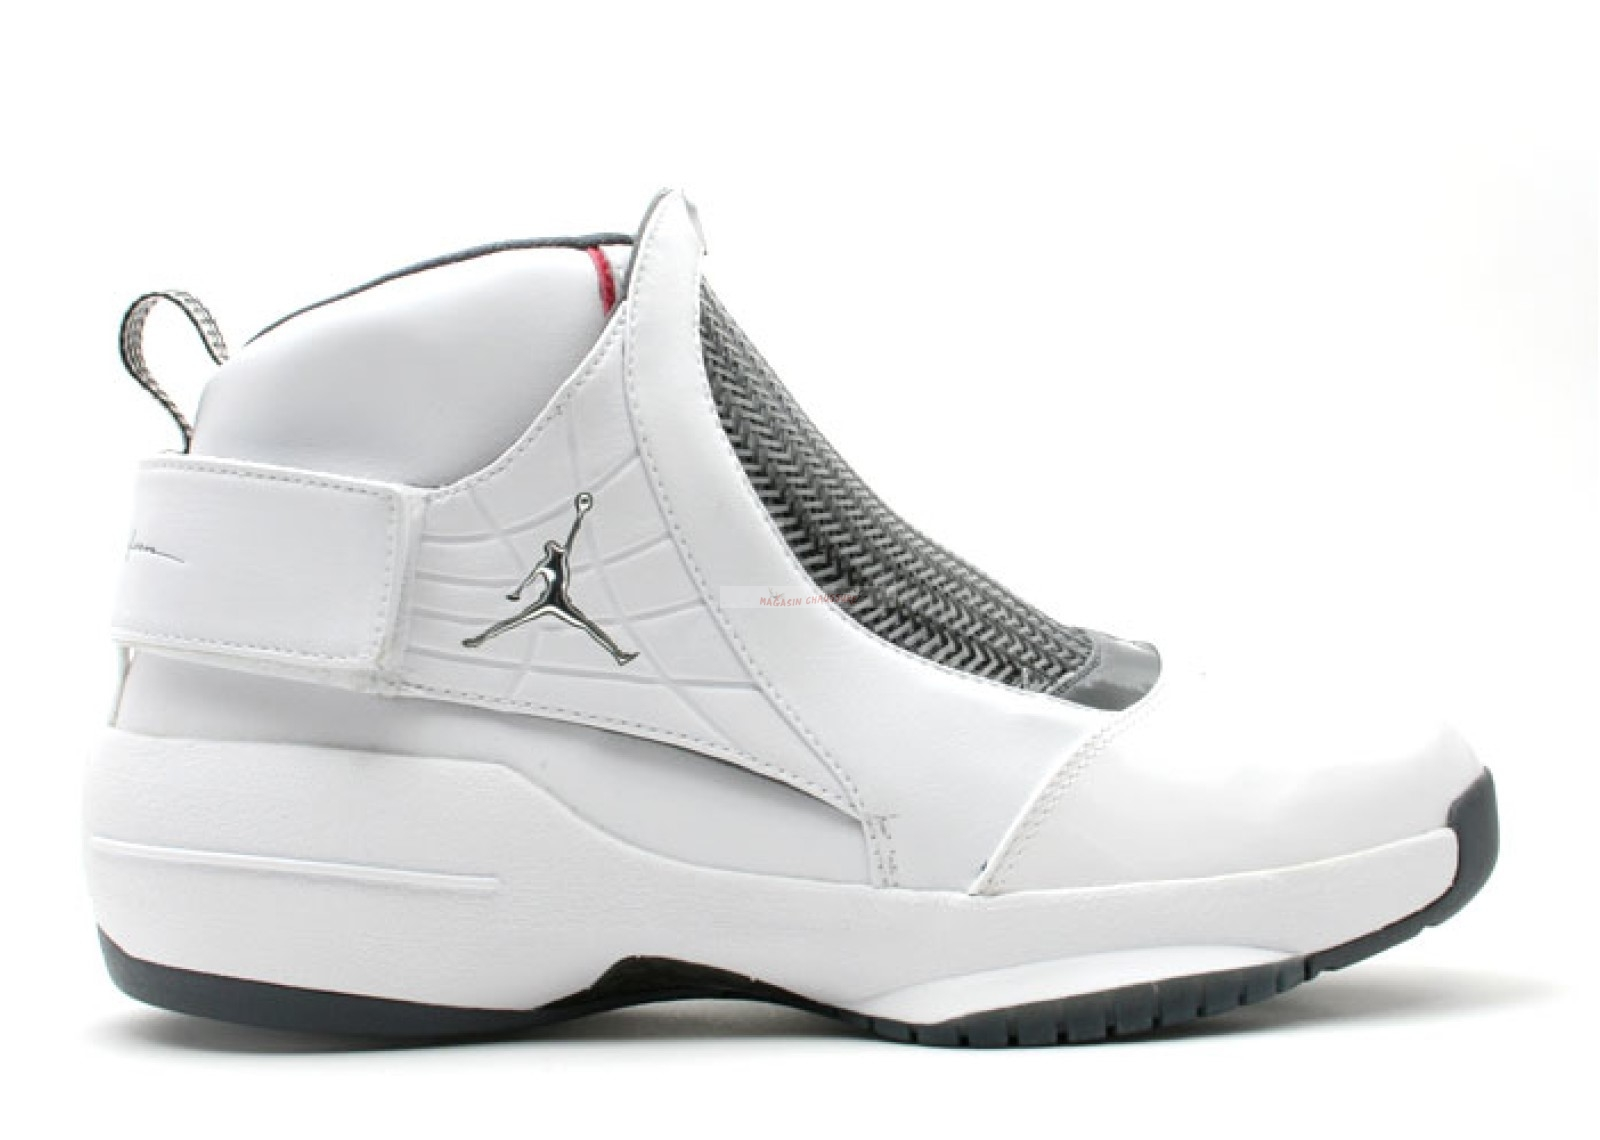 Air Jordan 19 Blanc (307546-102) Chaussure de Basket